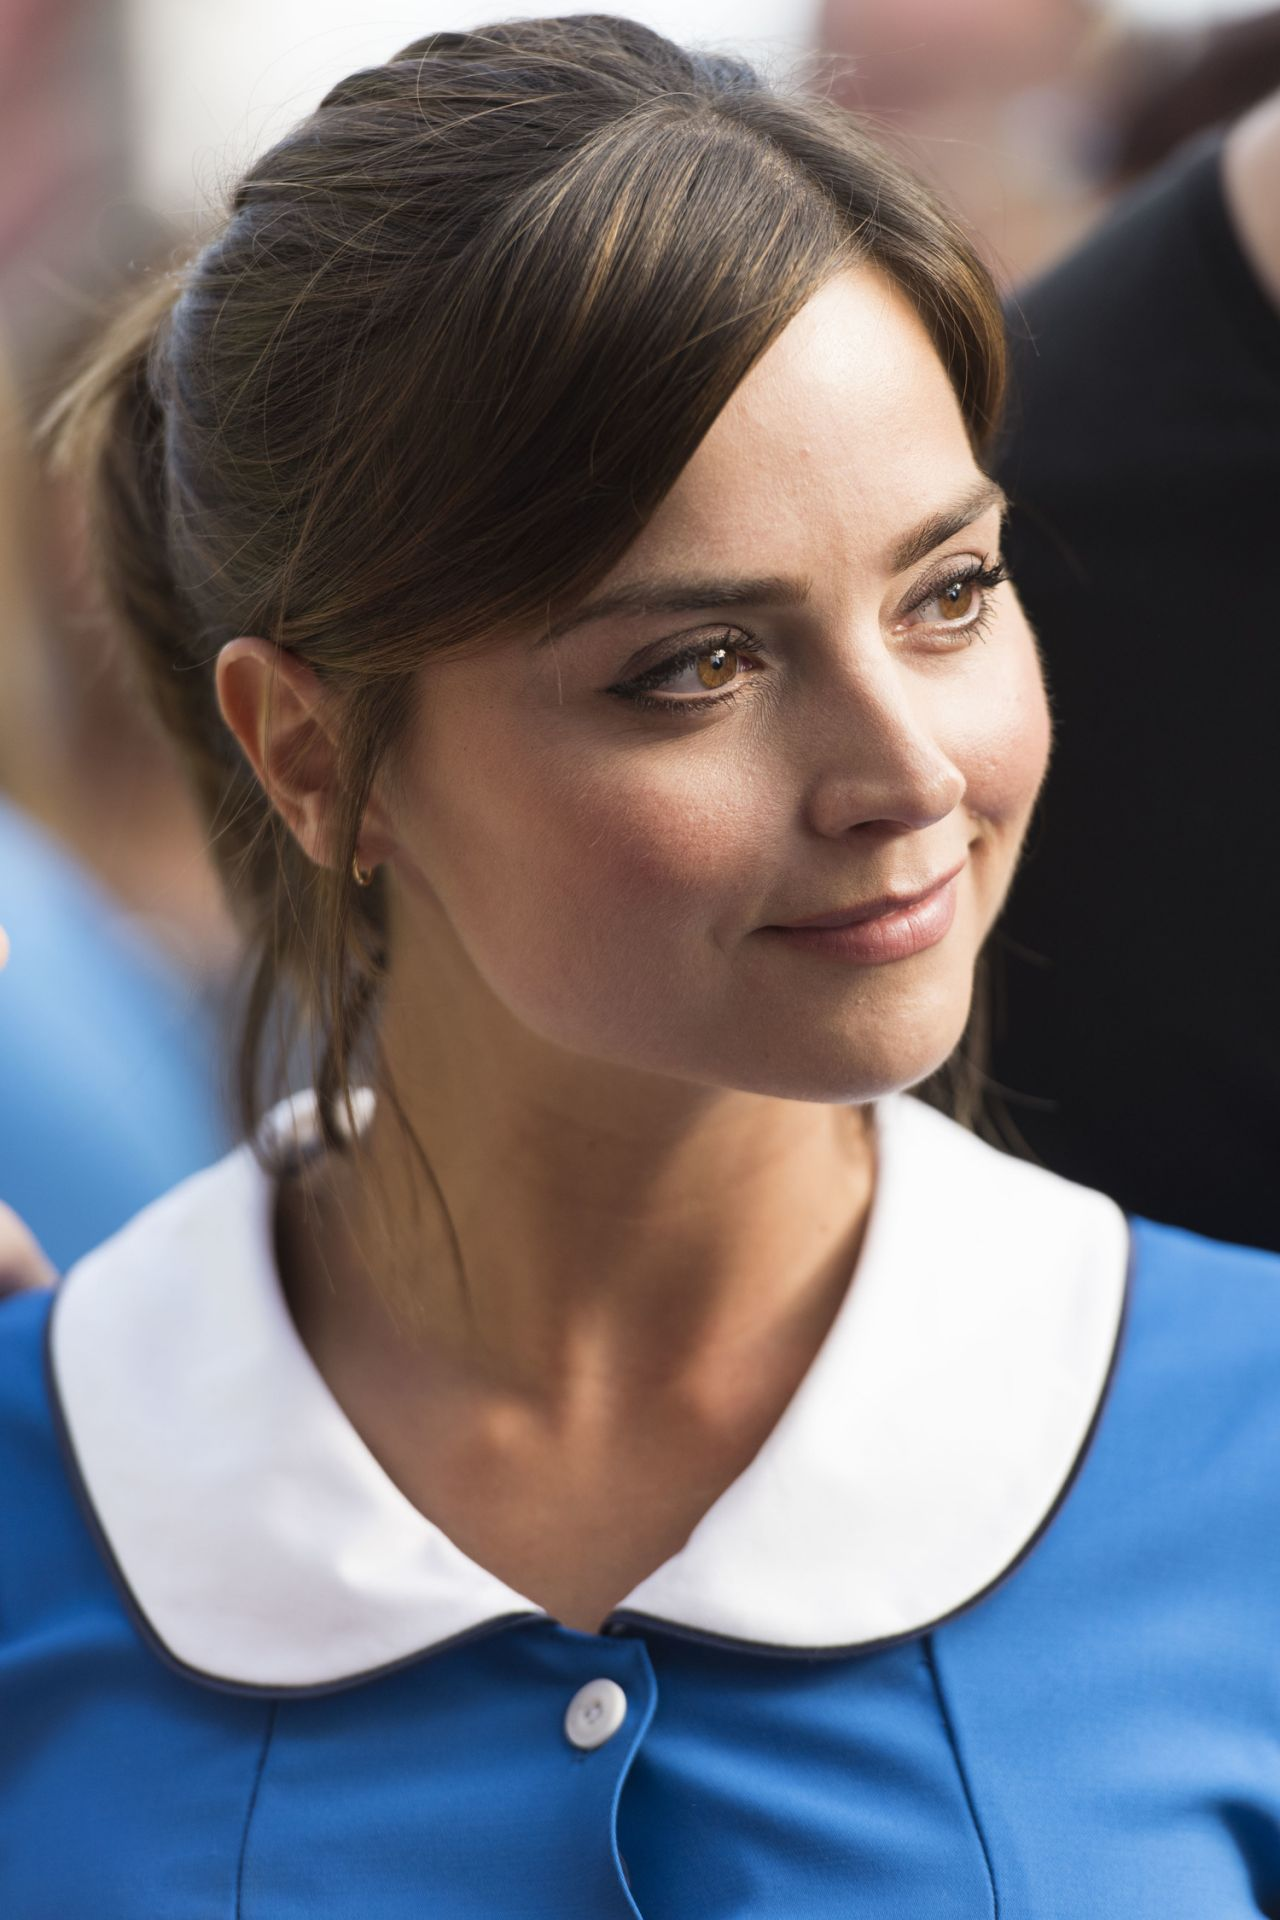 Jenna Coleman In A Waitress Costume Doctor Who Set In